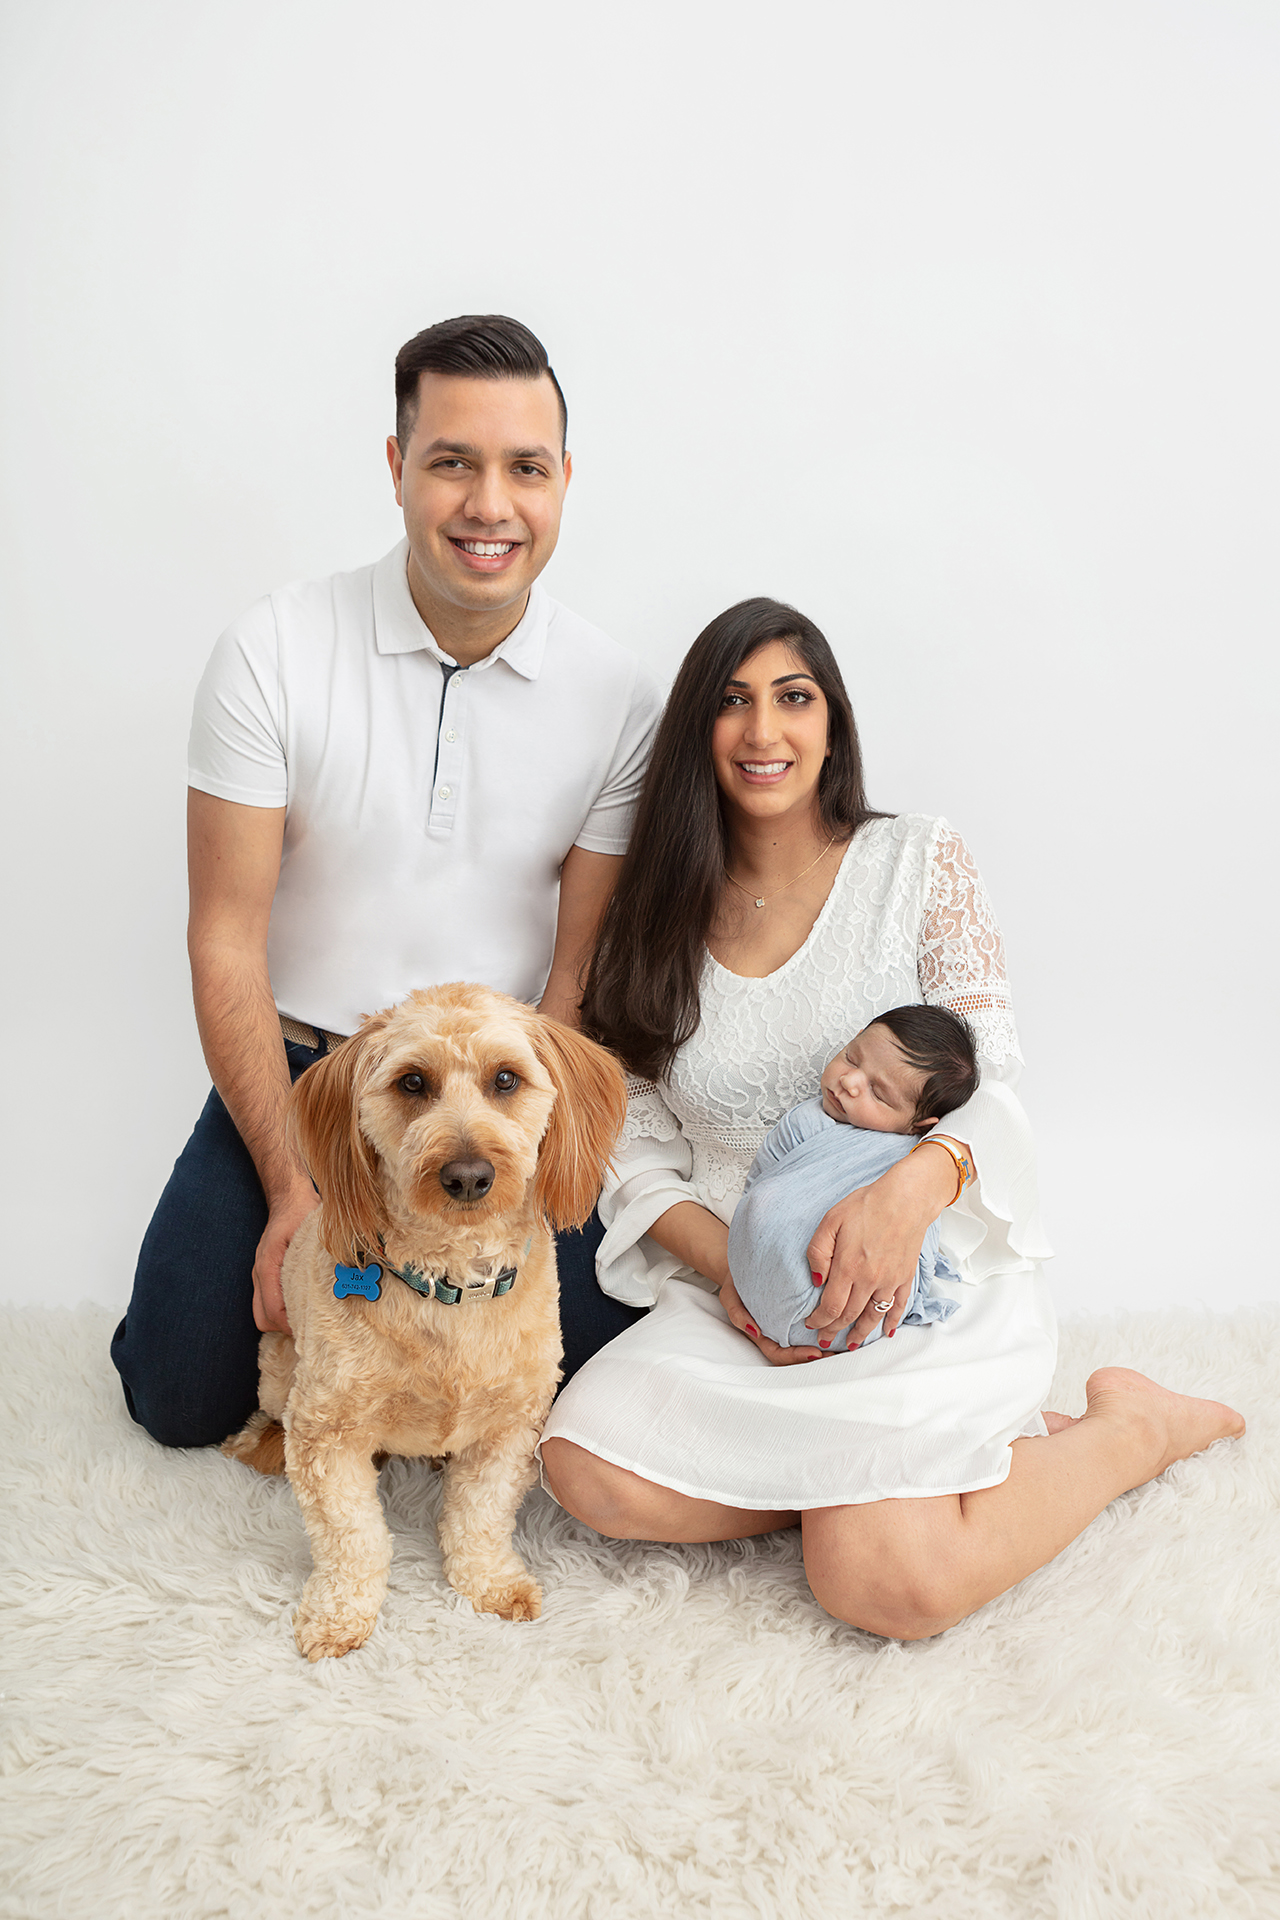 family newborn photography with miniature golden doodle, family medicine doctor dad, dentist mom, newborn baby boy